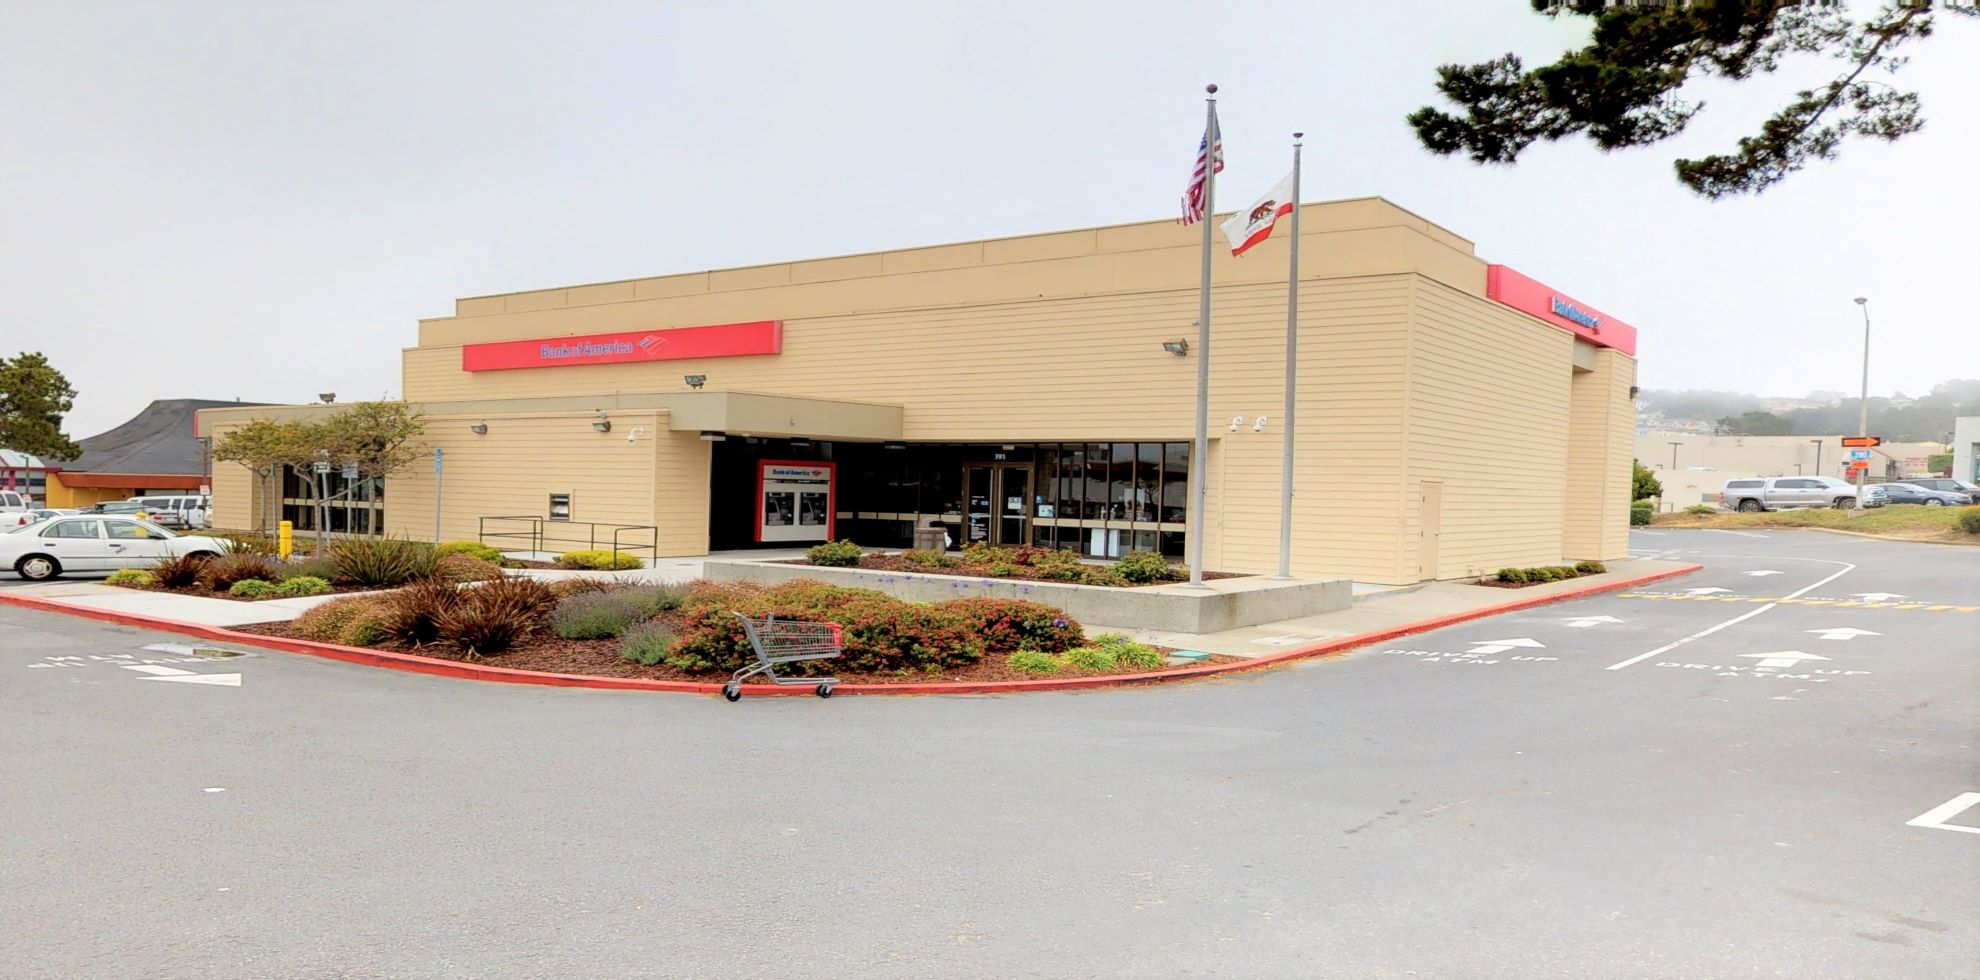 Bank of America financial center with drive-thru ATM | 391 Gellert Blvd, Daly City, CA 94015